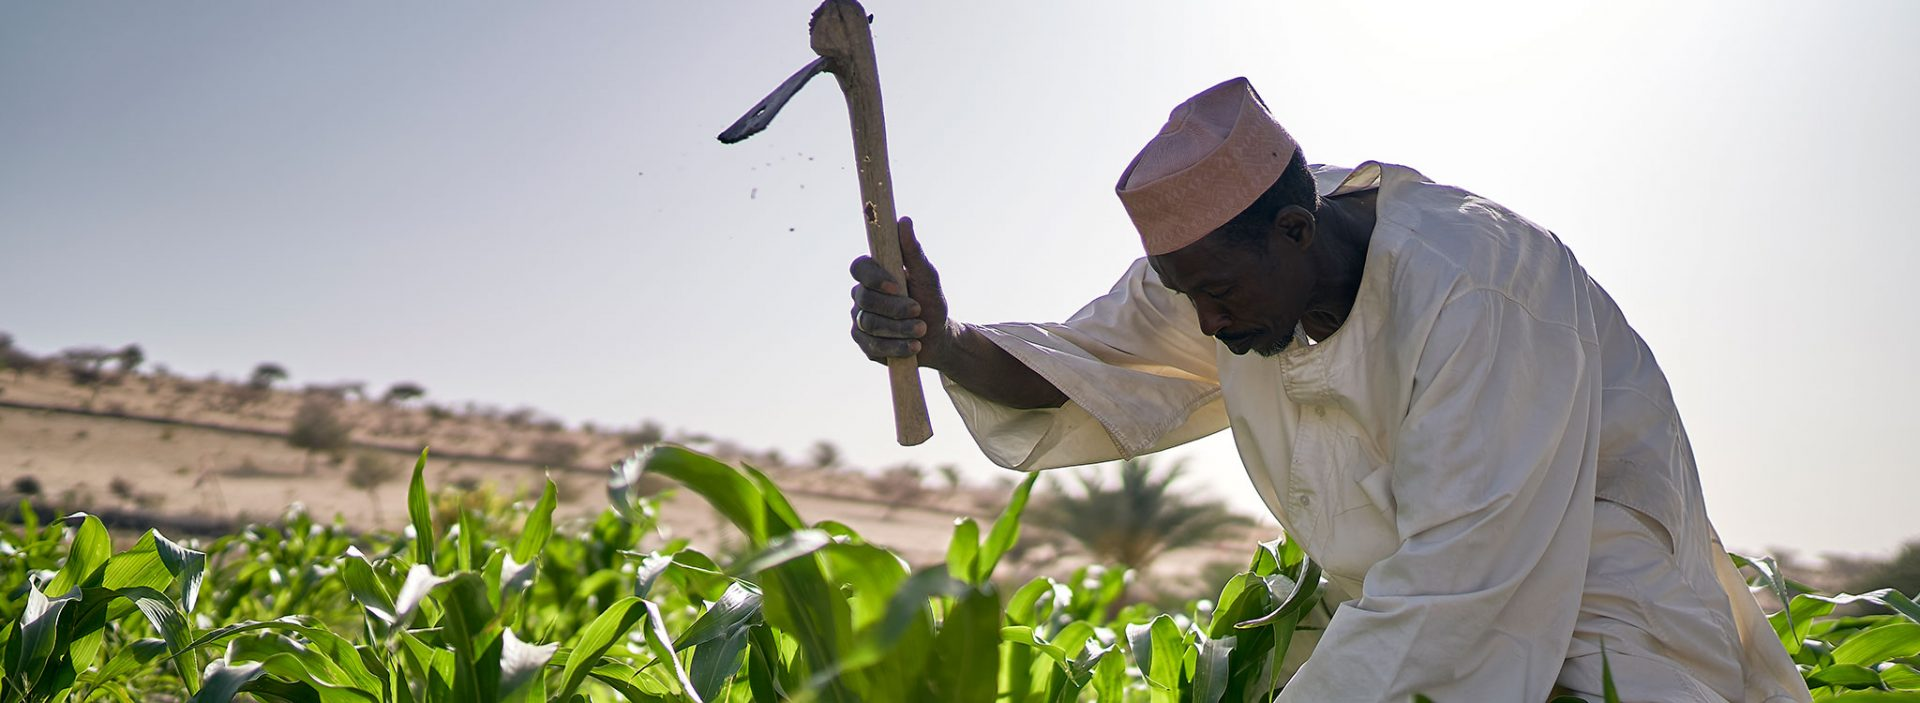 A man works in a field in Chad.